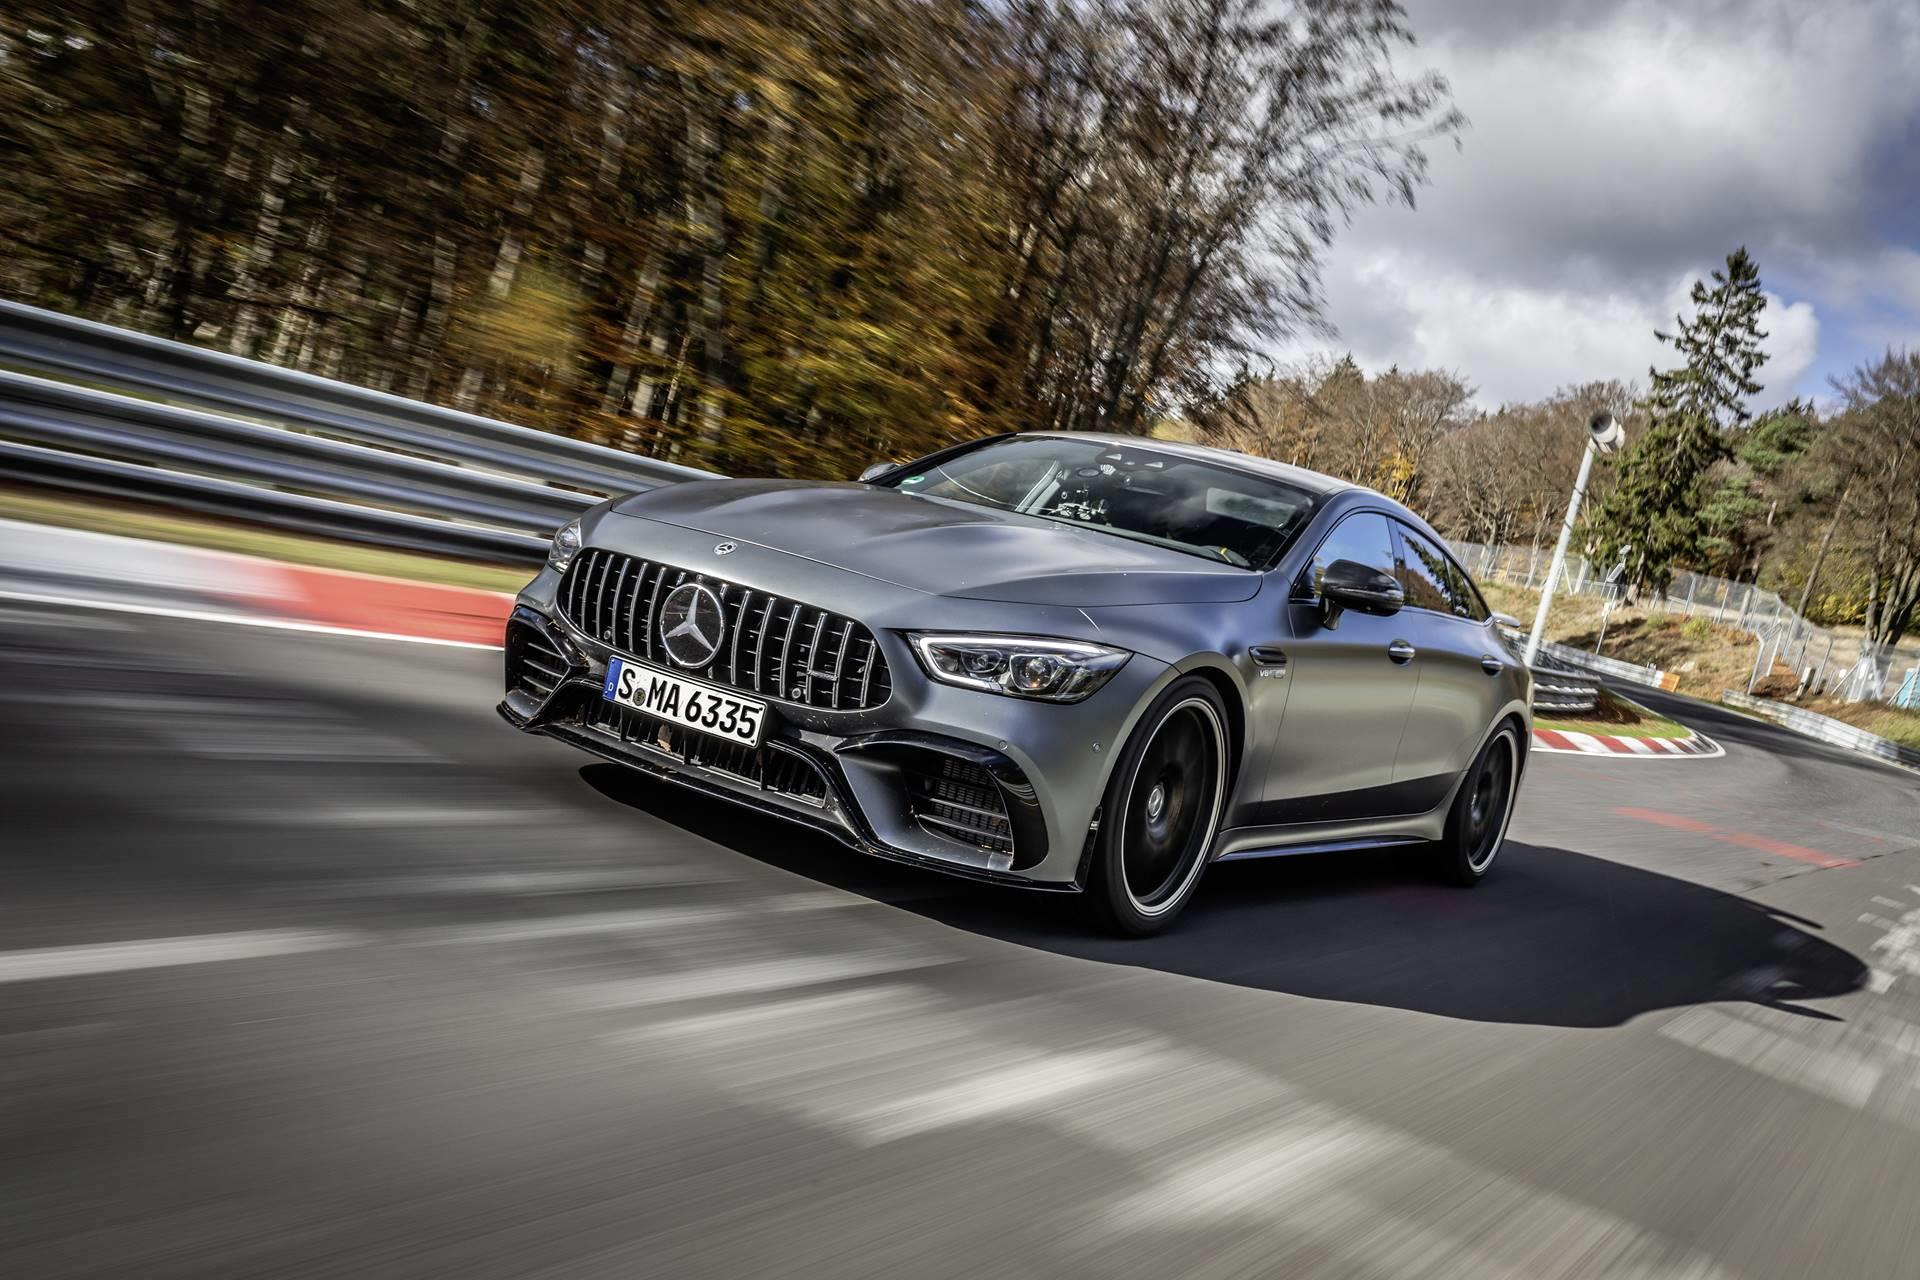 2021 Mercedes-Benz AMG GT 63 S 4MATIC News and Information